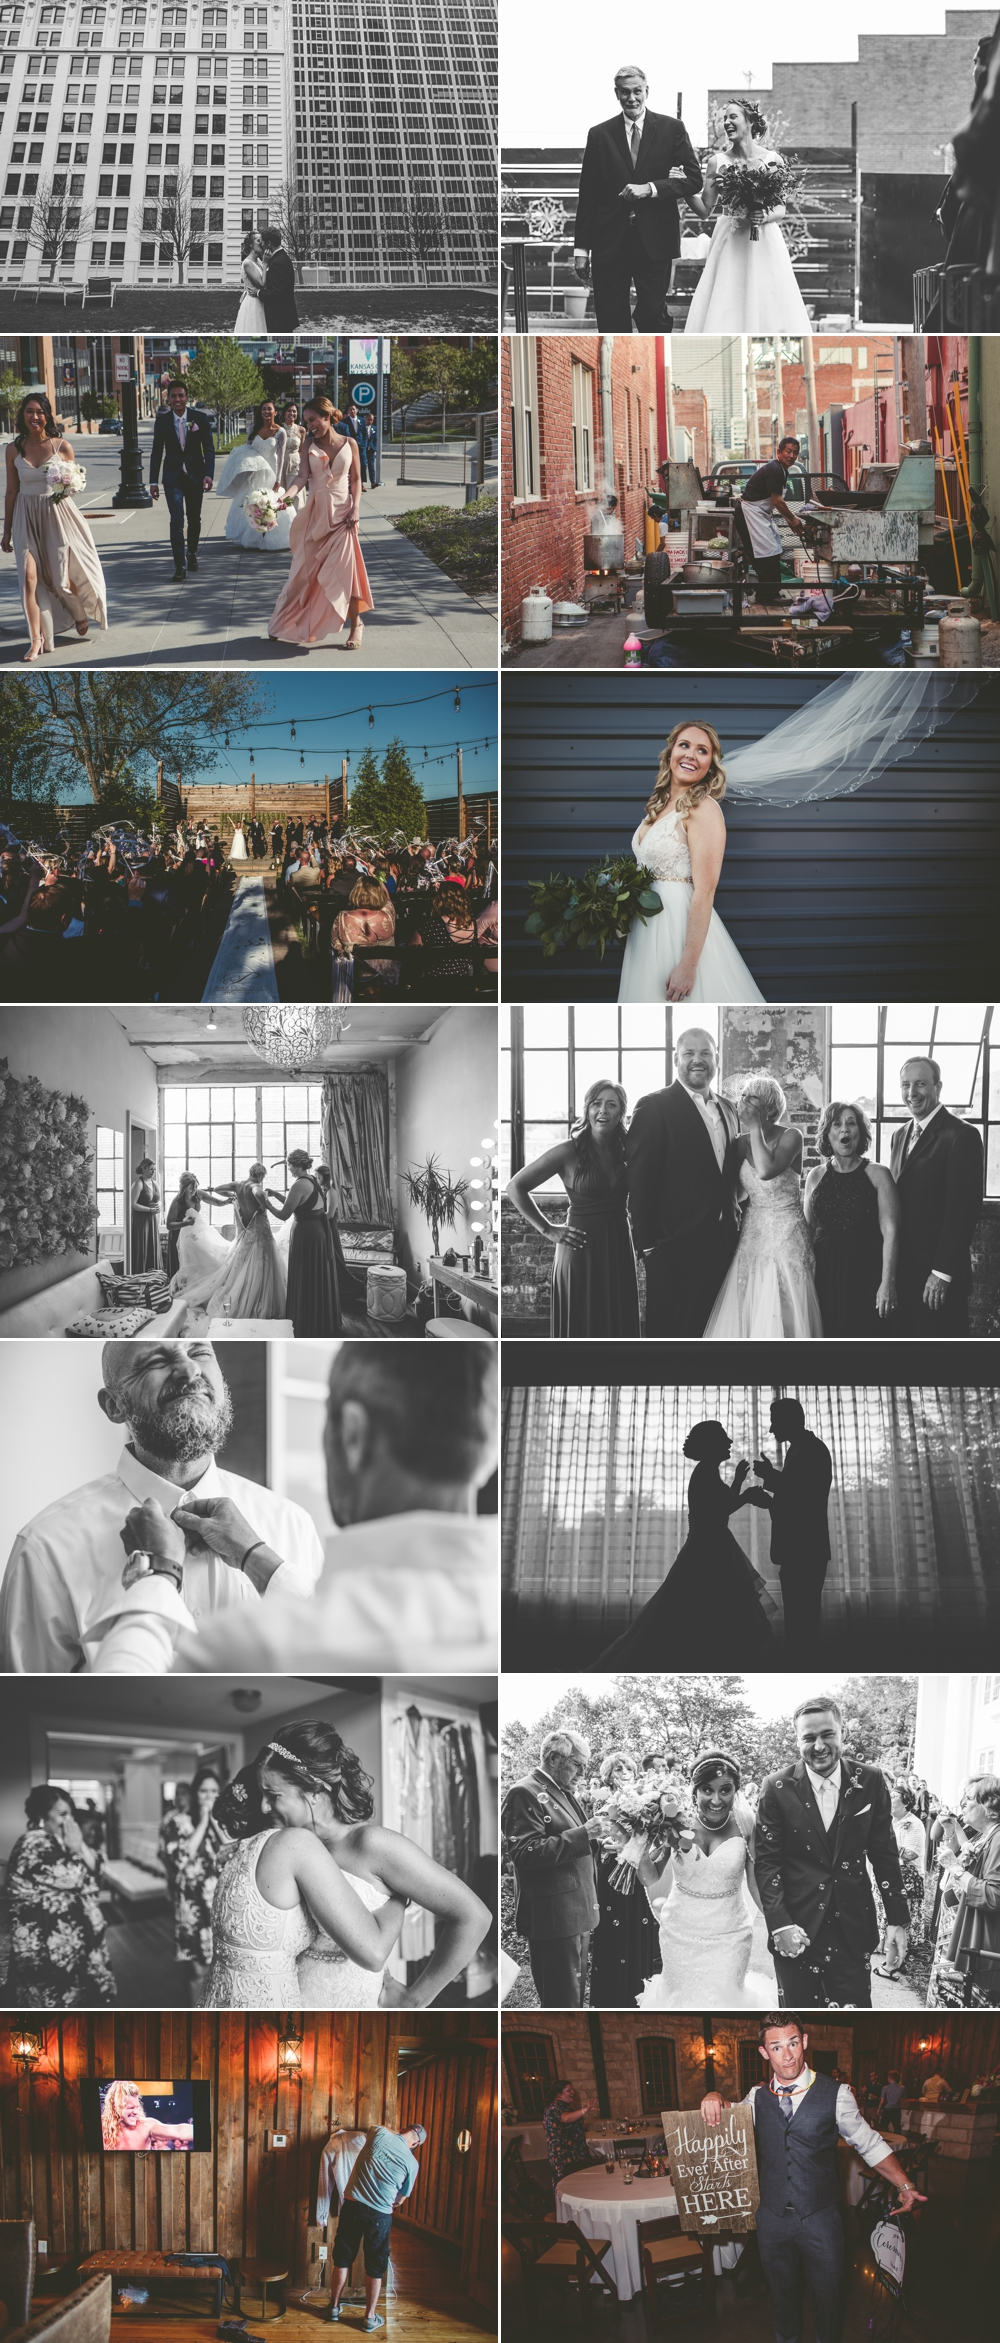 jason_domingues_photography_best_kansas_city_wedding_photographer_kc_weddings_0007.JPG